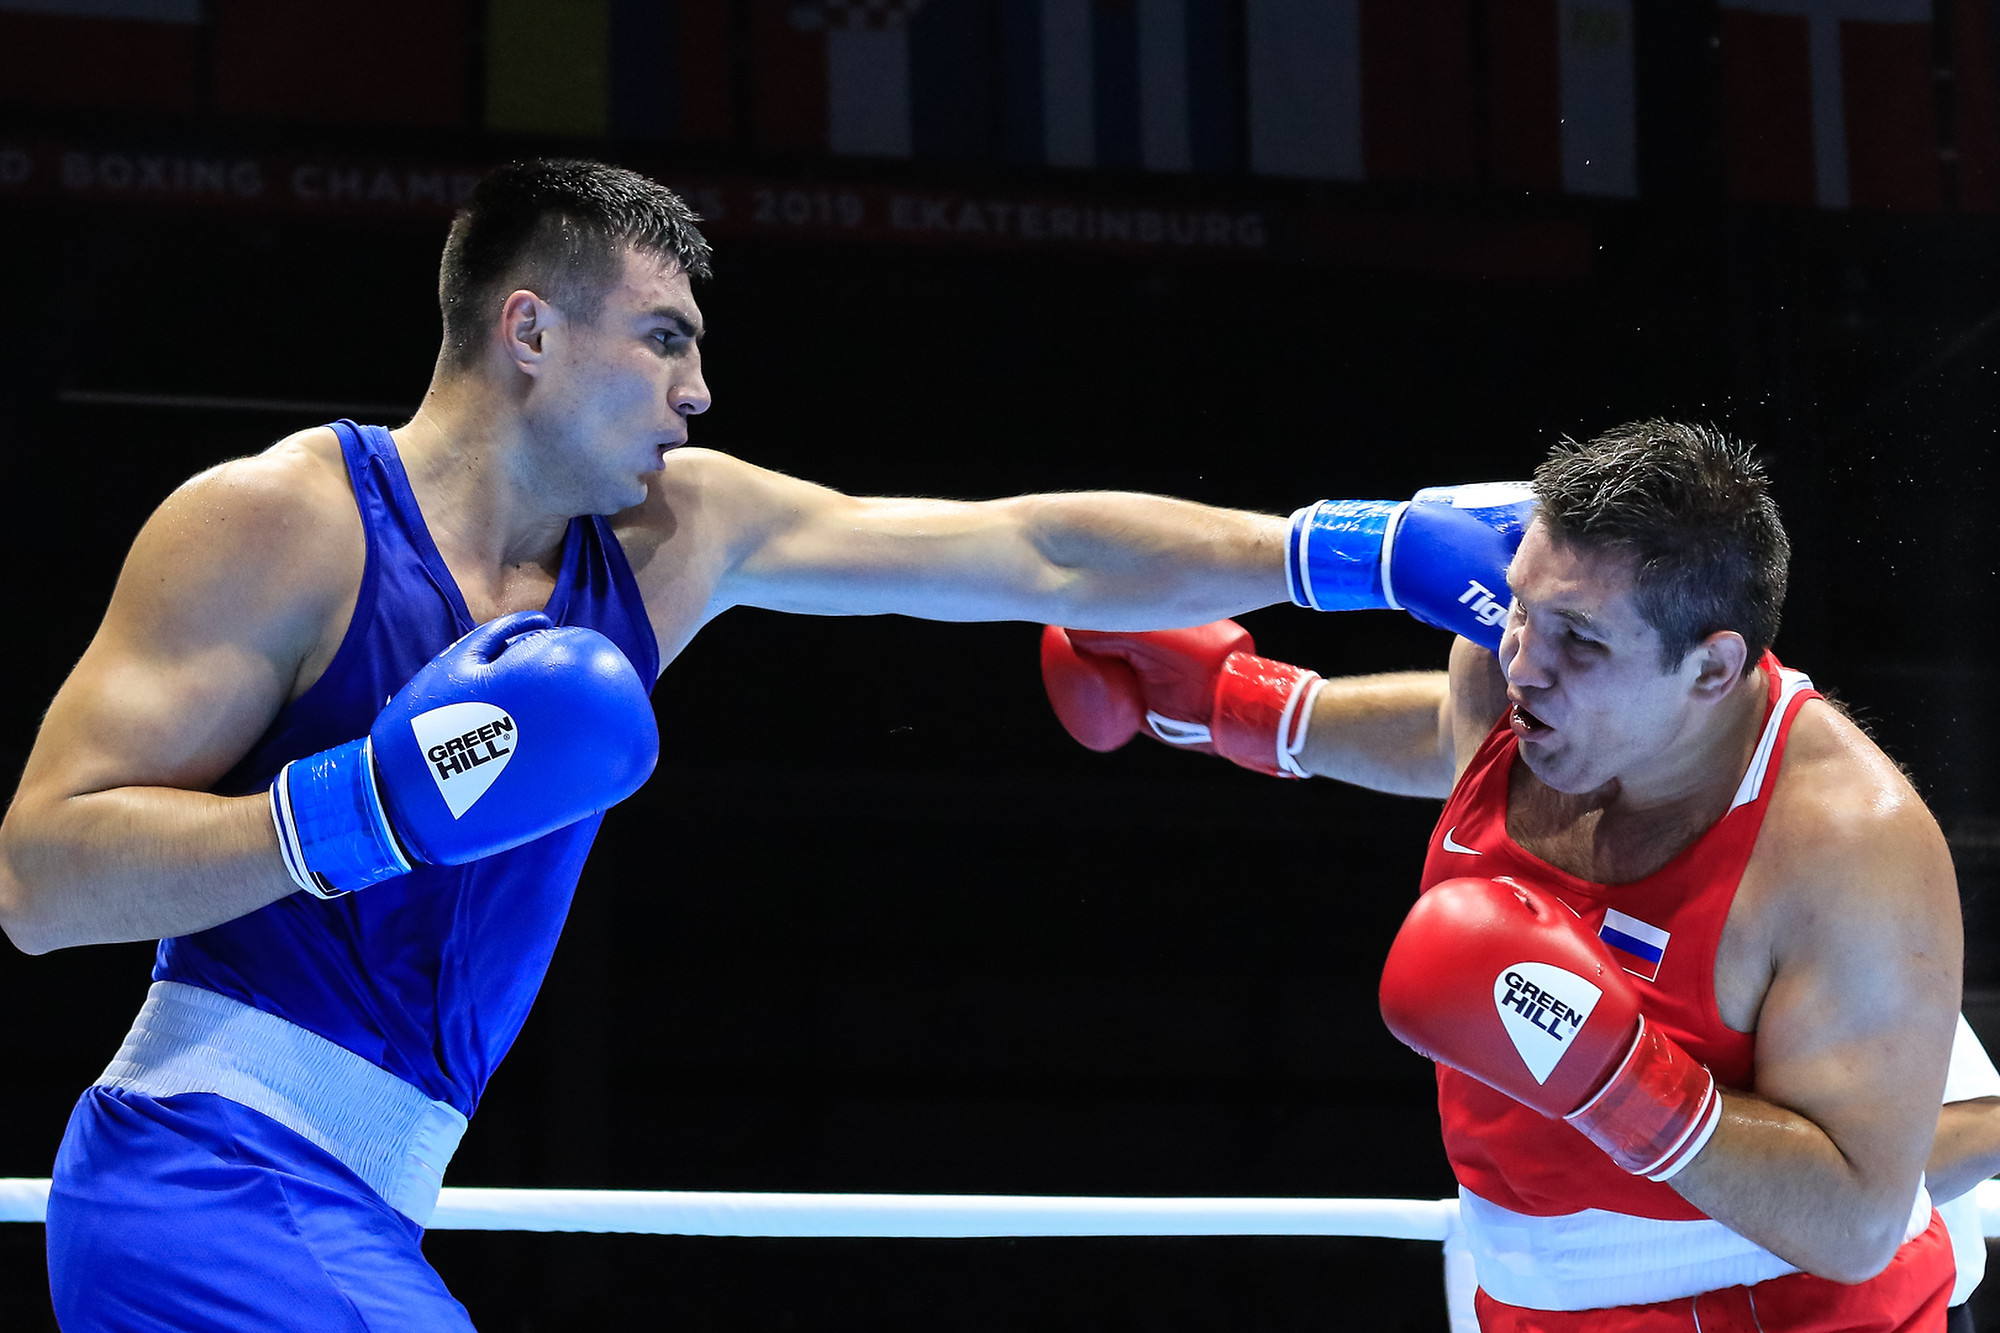 Uzbekistan's Bakhodir Jalolov recorded a unanimous victory against Russia's Maksim Babanin in the super heavyweight division ©Yekaterinburg 2019